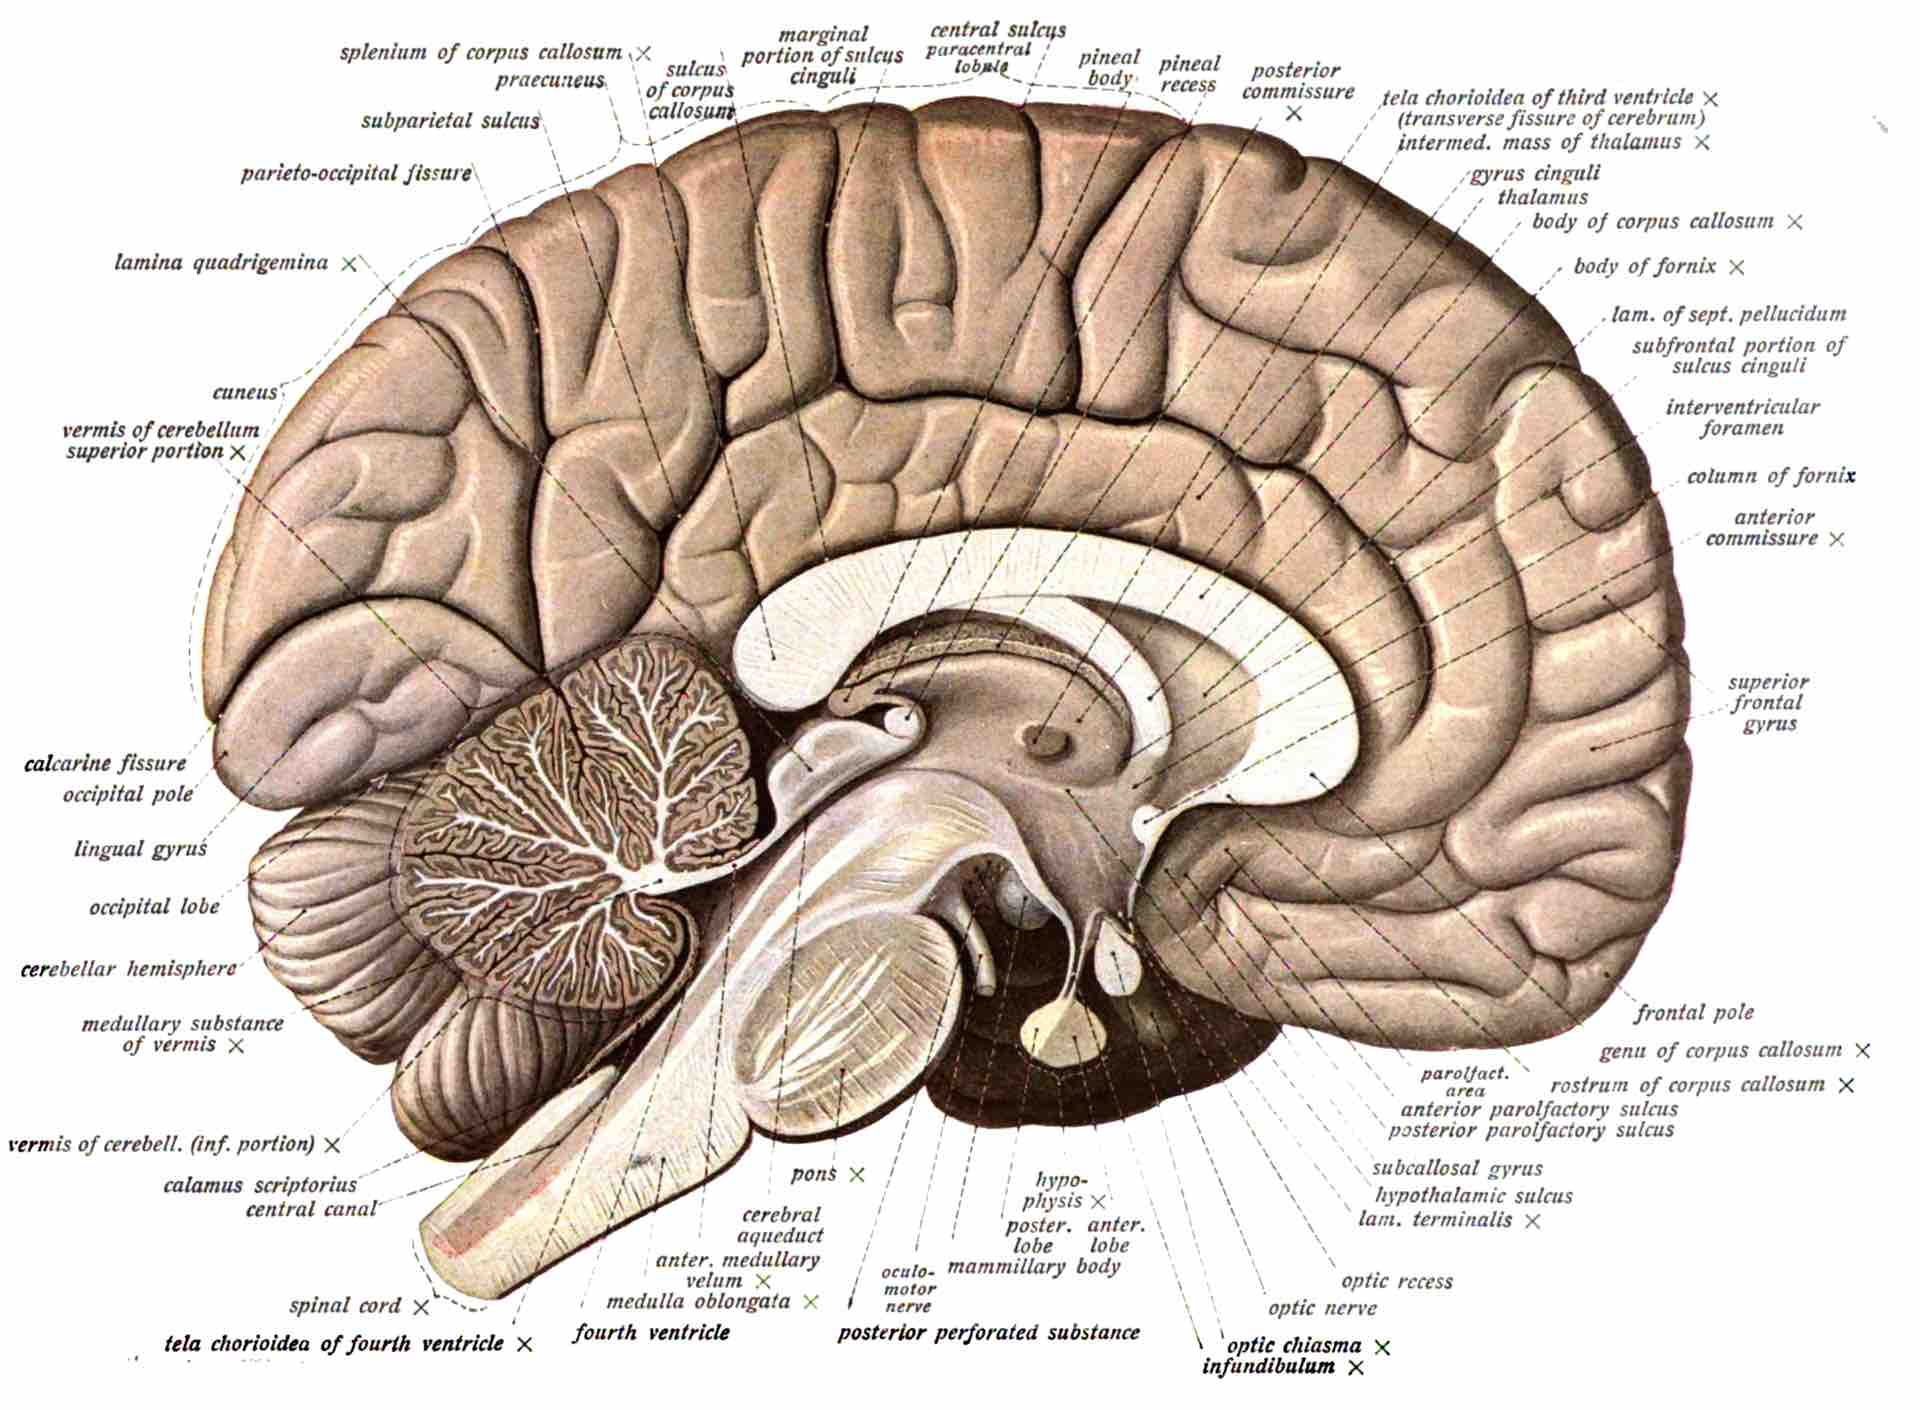 Image of a brain with legend